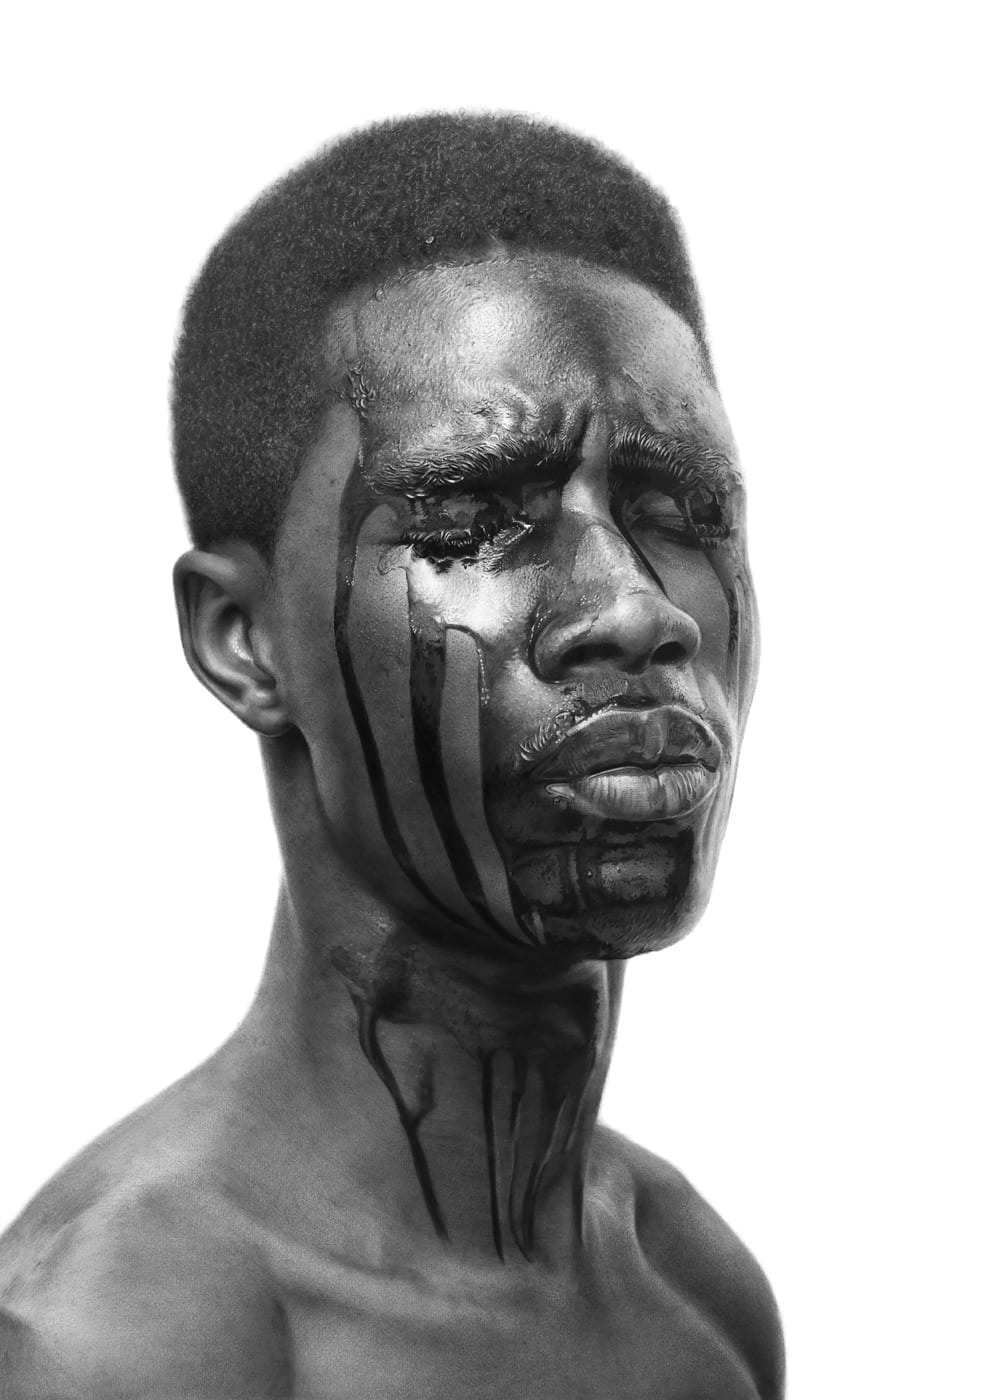 Arinze Stanley The Machine Man 6 Charcoal and graphite on paper 29.3 x 27.5